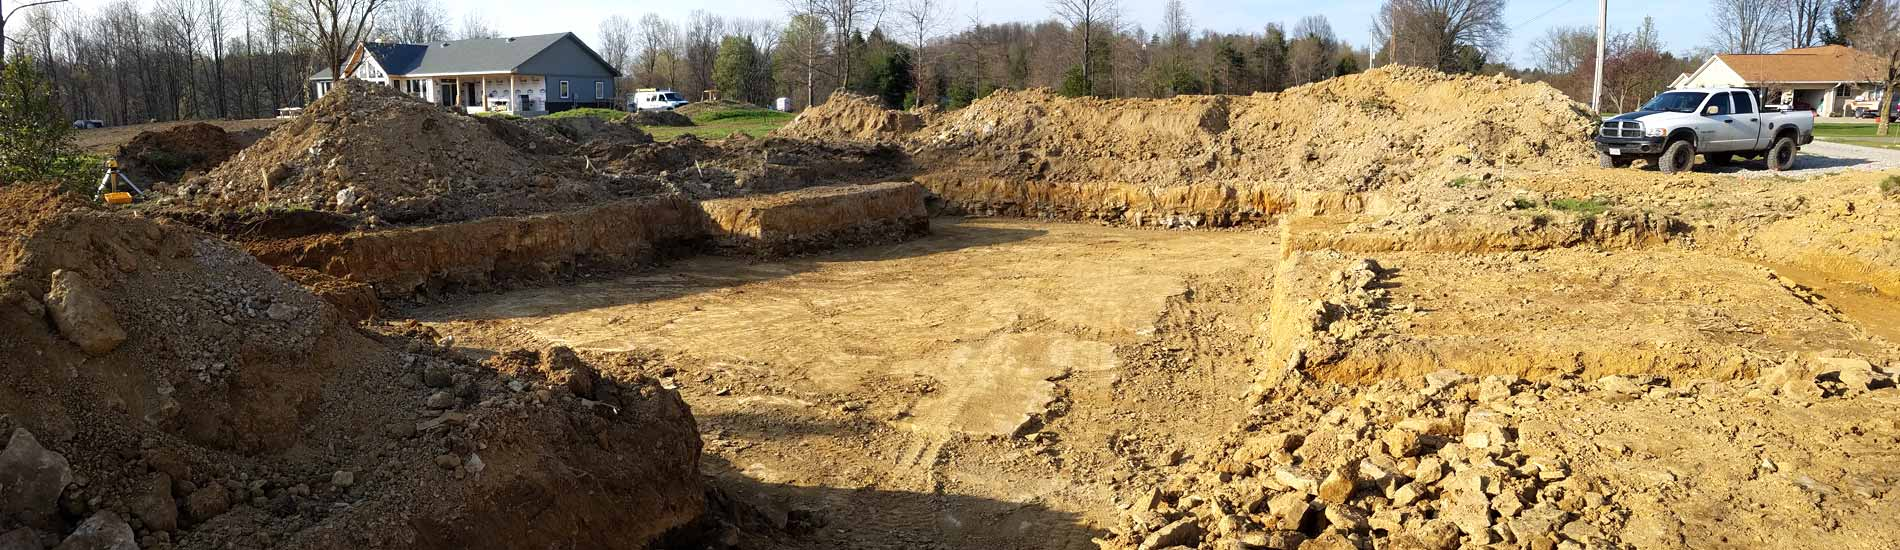 Foundation excavating for new home construction